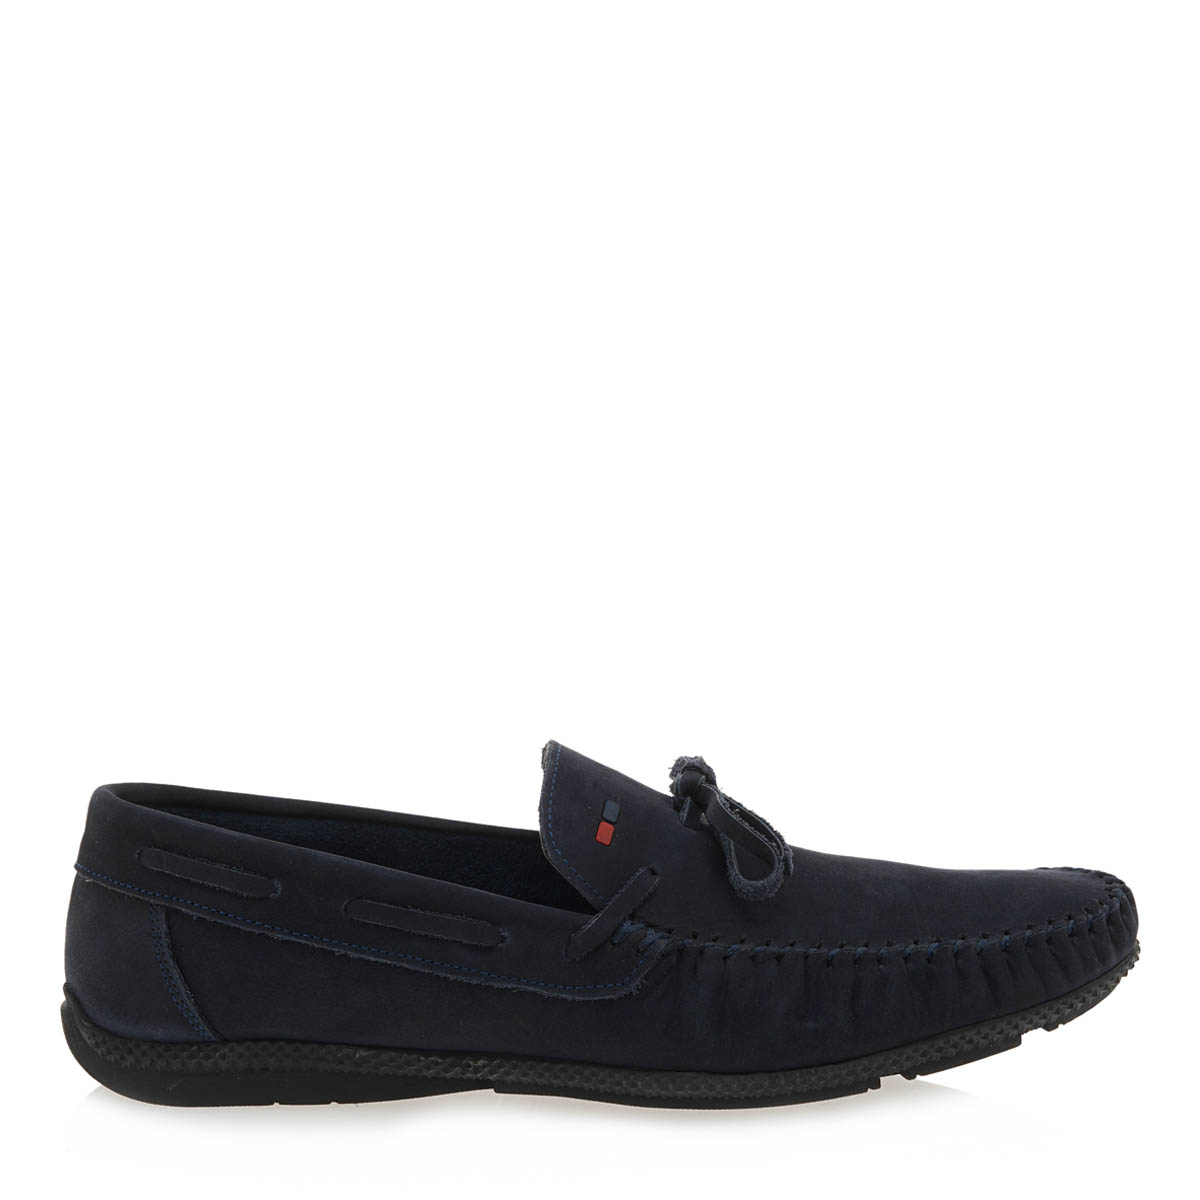 BOAT SHOES σχέδιο: I507U4231 outlet   ανδρικα   boat shoes